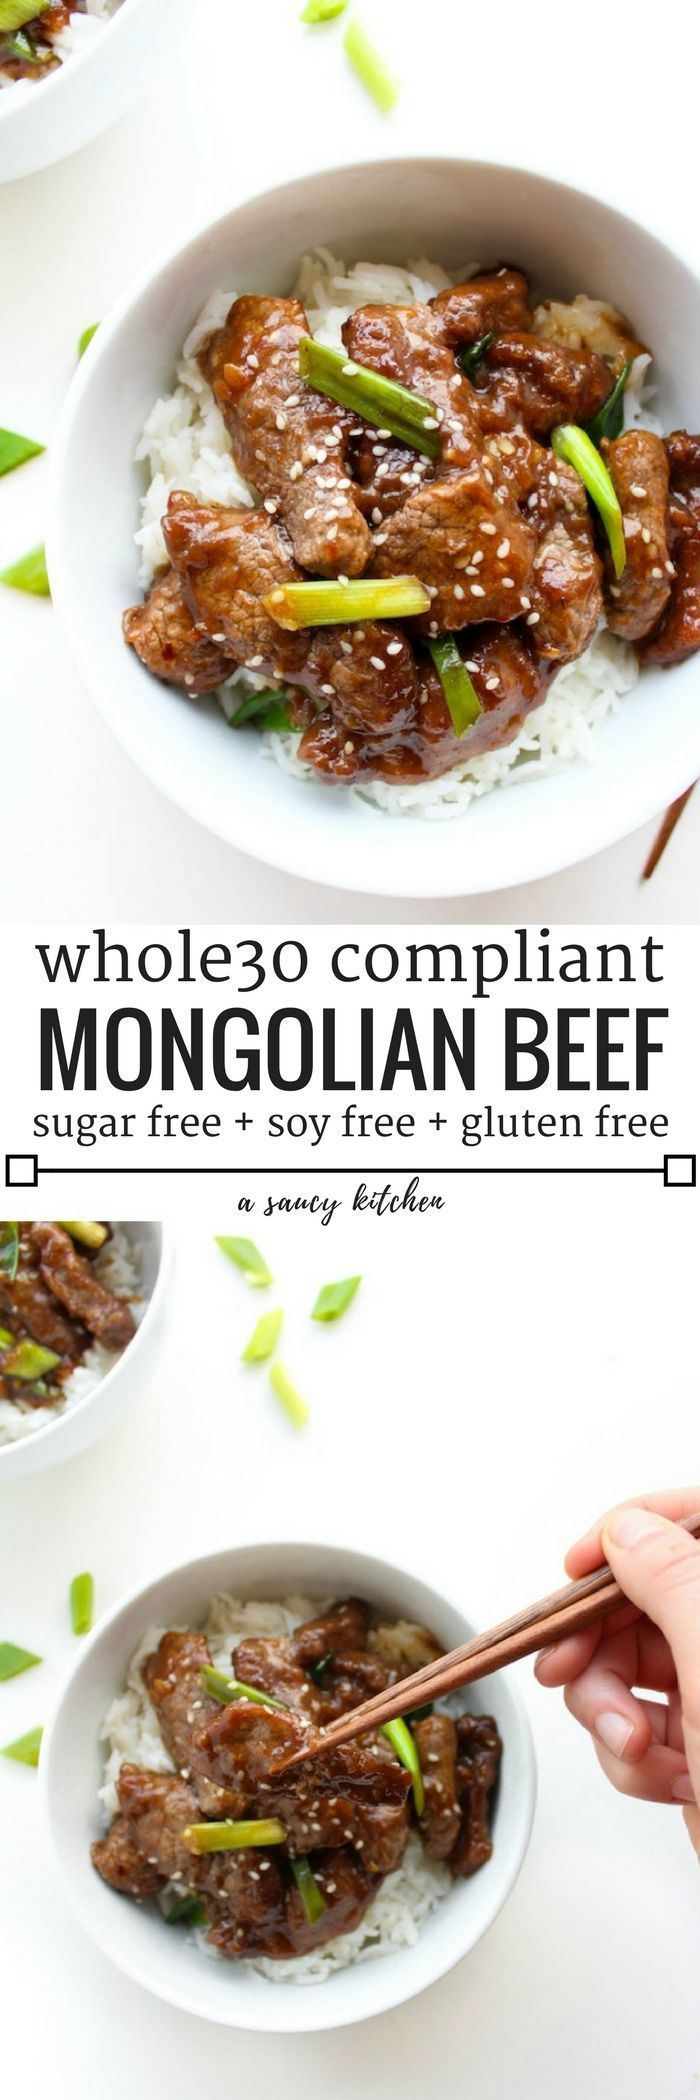 1132 best Whole30 Recipes and Meal Ideas images on Pinterest ...